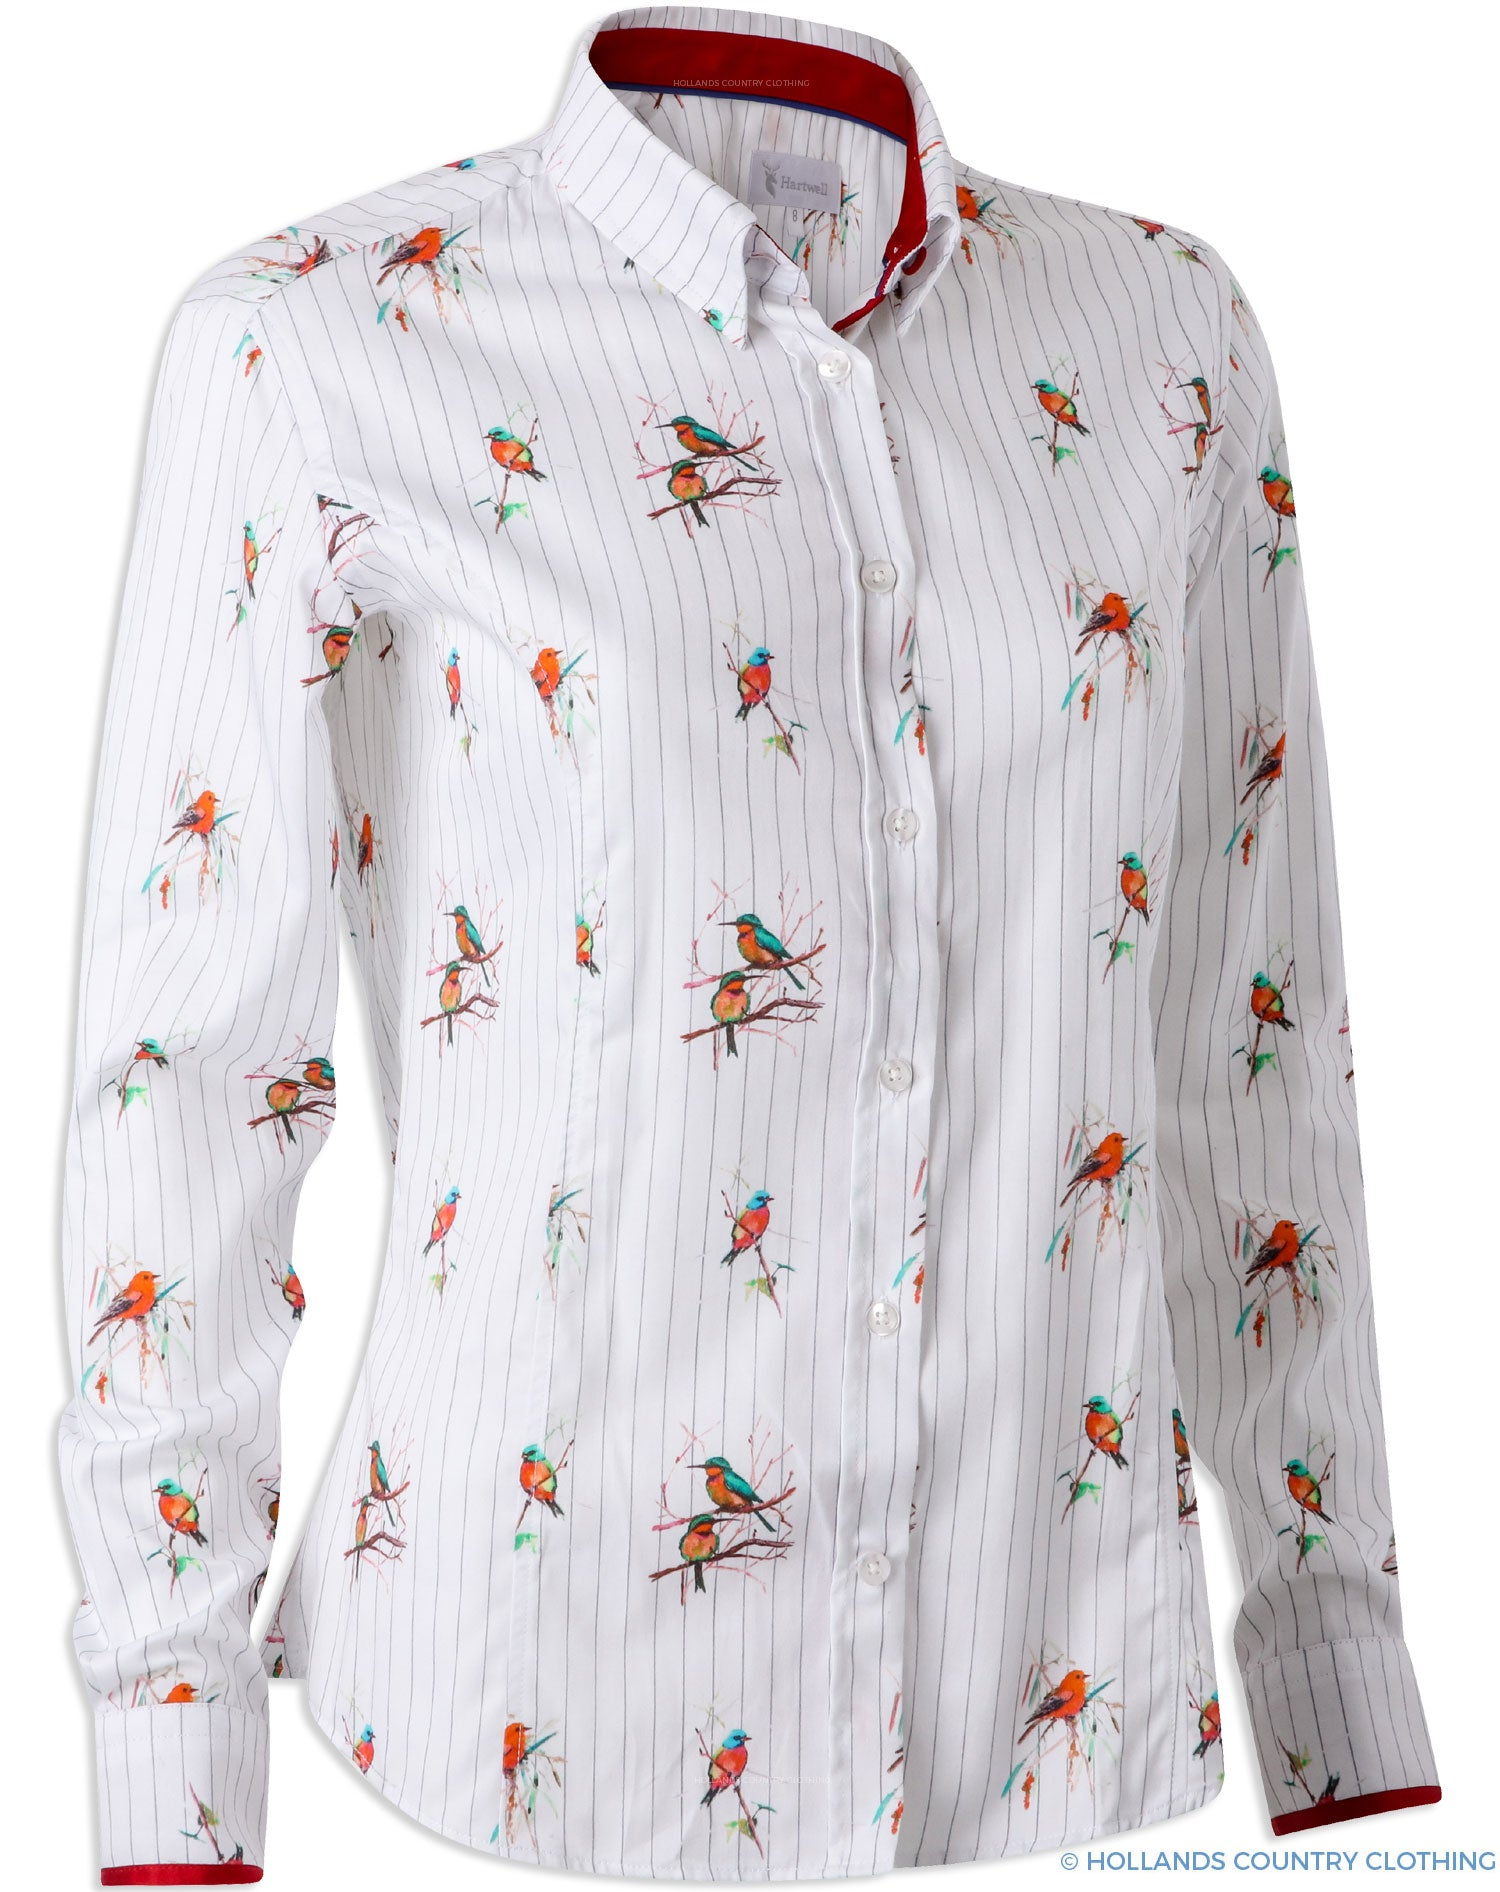 Hartwell Layla Cotton Shirt | Red Birds white shirt